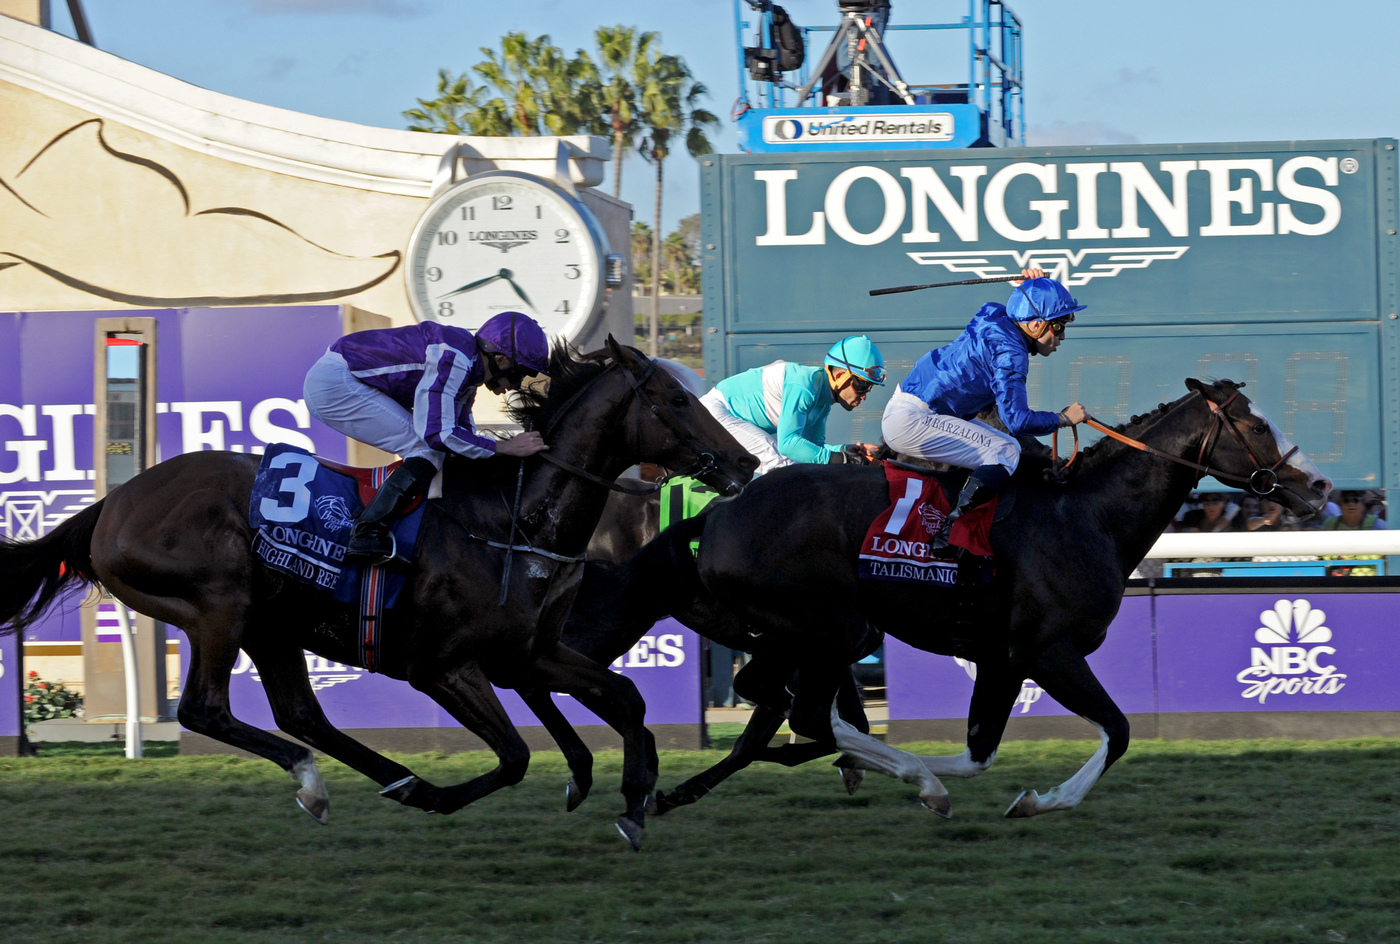 Longines Flat Racing Event: Swiss Watch Brand Longines Times 2017 Breeders' Cup World Championships at Del Mar 11